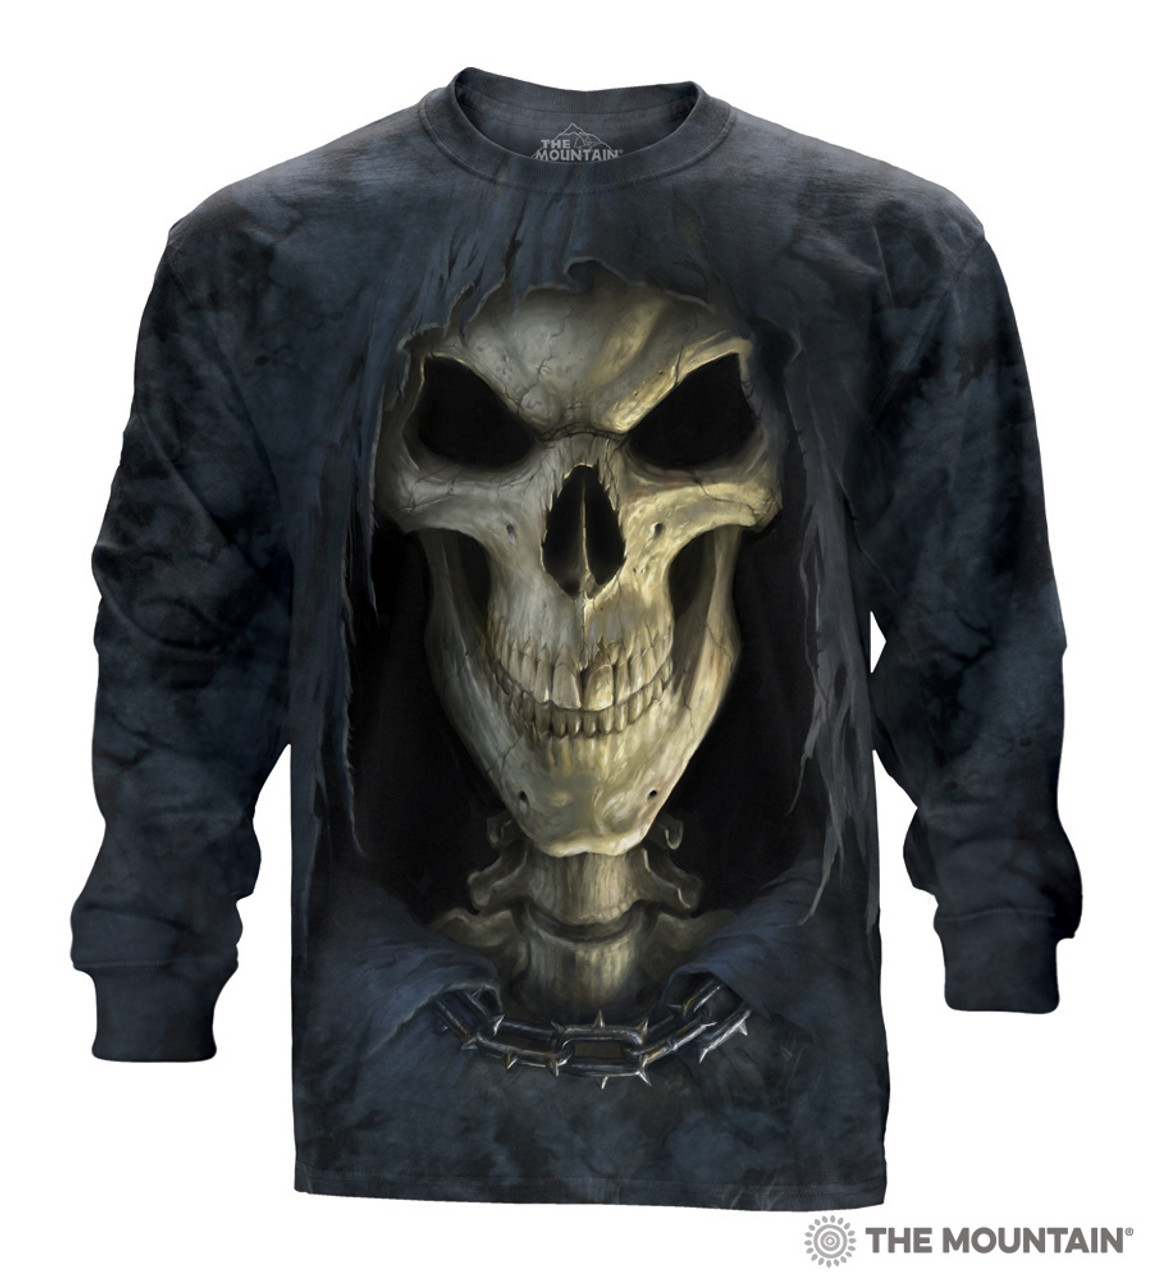 **(NEW-OFFICIAL-LICENSED/THE-MOUNTIAN-BRAND & DESIGN/HOODED-GRIM-REAPER & GRUESOME-SKULL,FACE-OF-DEATH-TEE/BEAUTIFULLY-DETAILED-CUSTOM-GRAPHIC-PRINTED/PREMIUM-LONG-SLEEVE-TEES)**